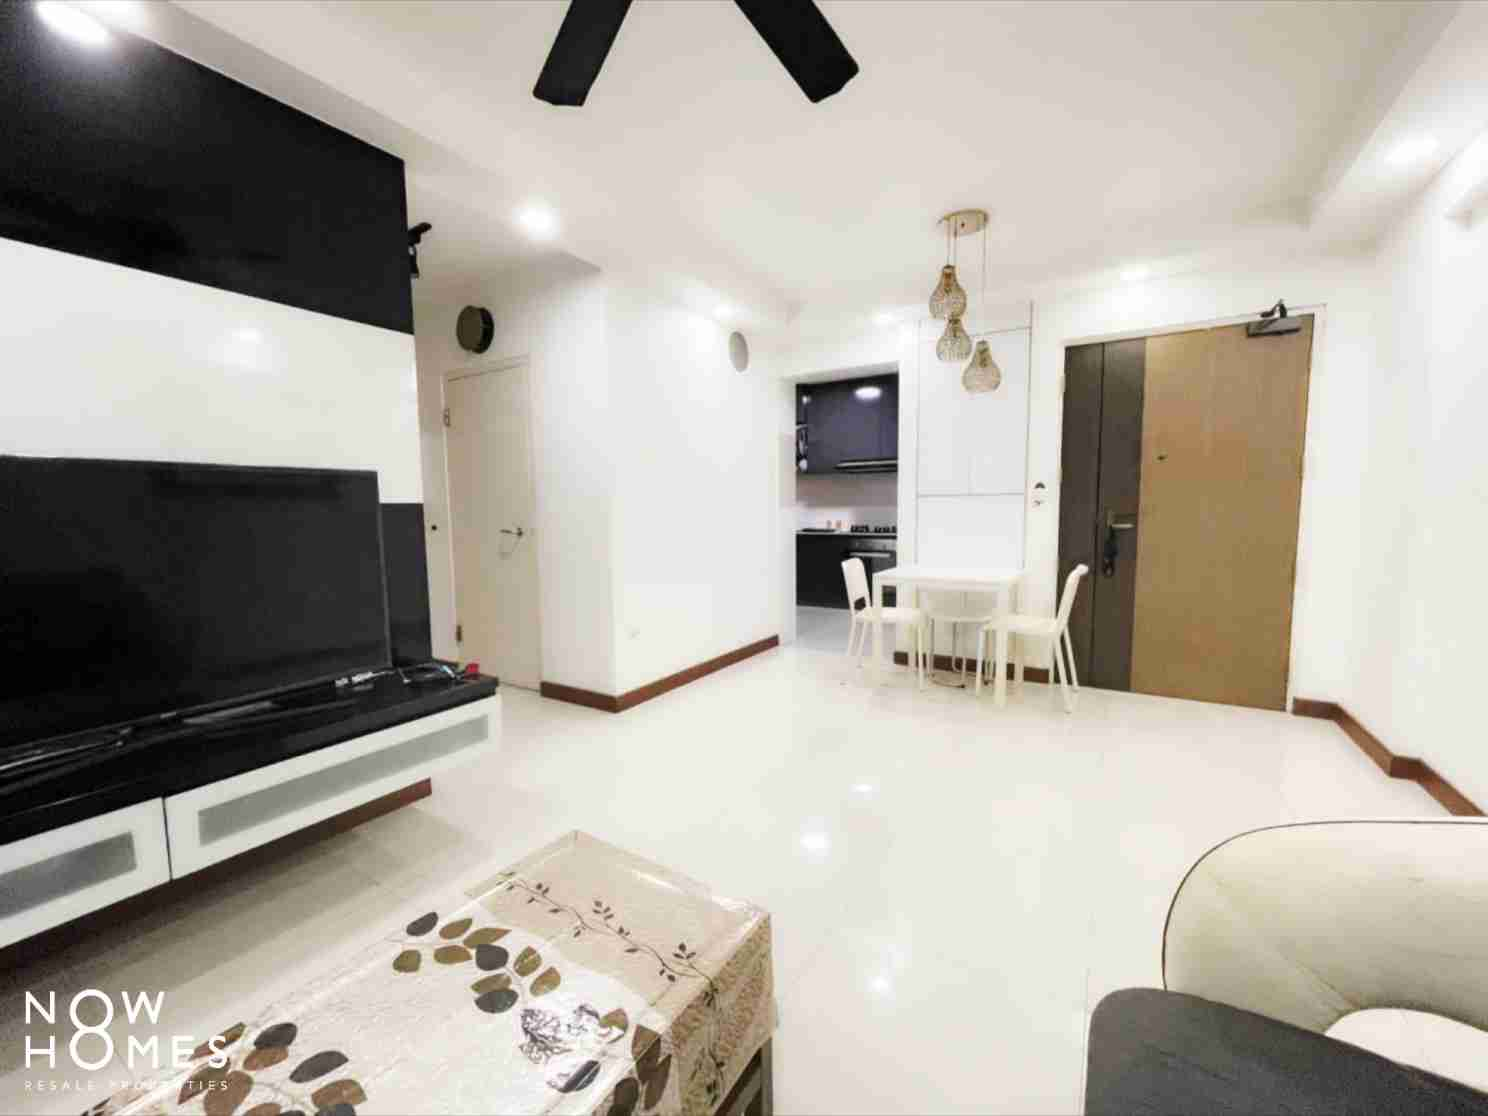 punggol resale property - 215a - White Living Room Kitchenview without fan